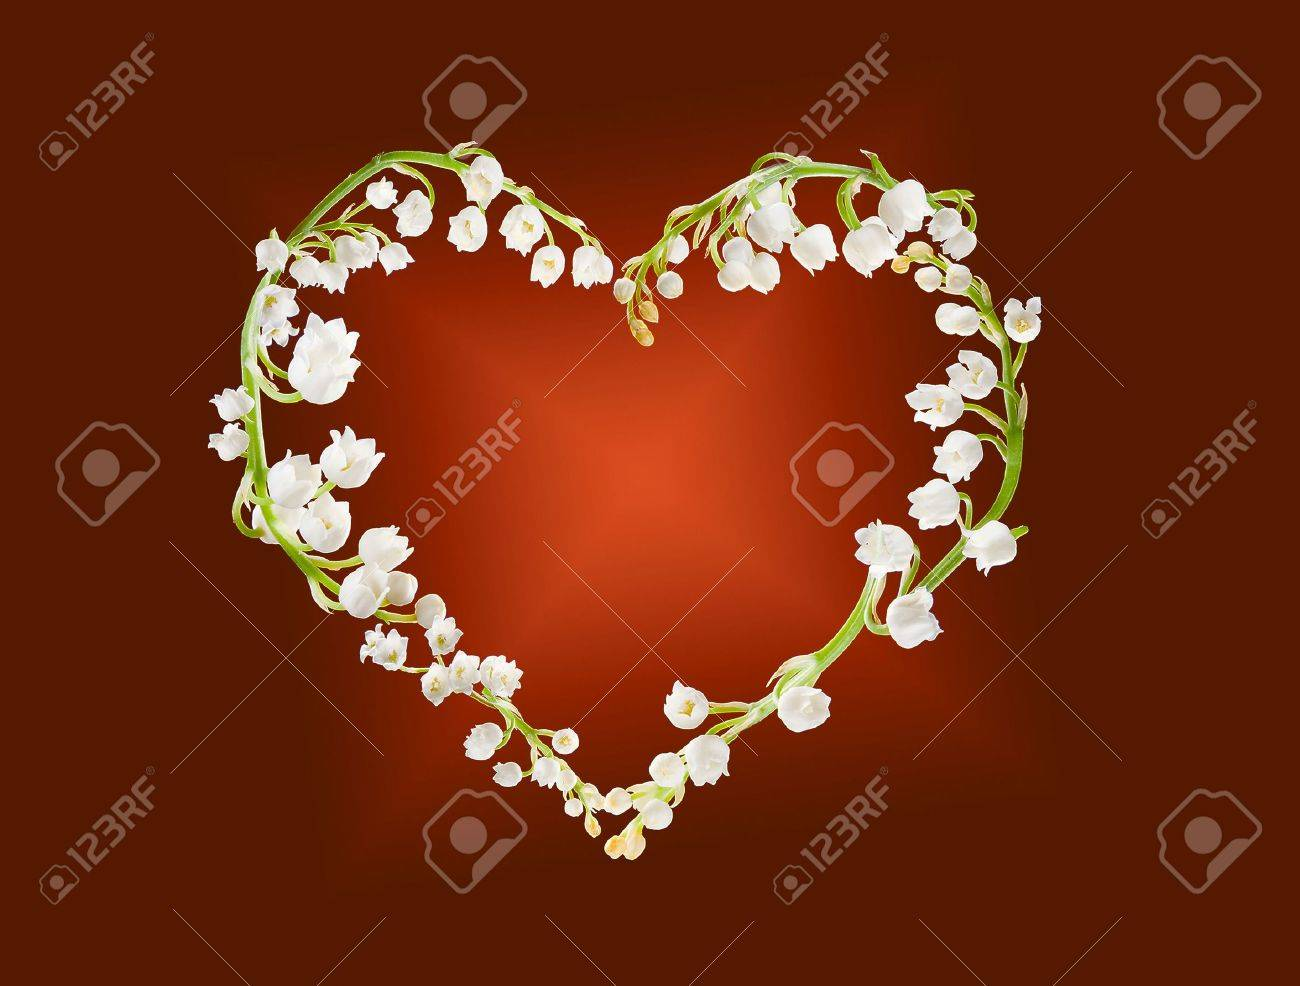 Heart shape made of lilly-of-the-valley flowers Stock Photo - 6169512